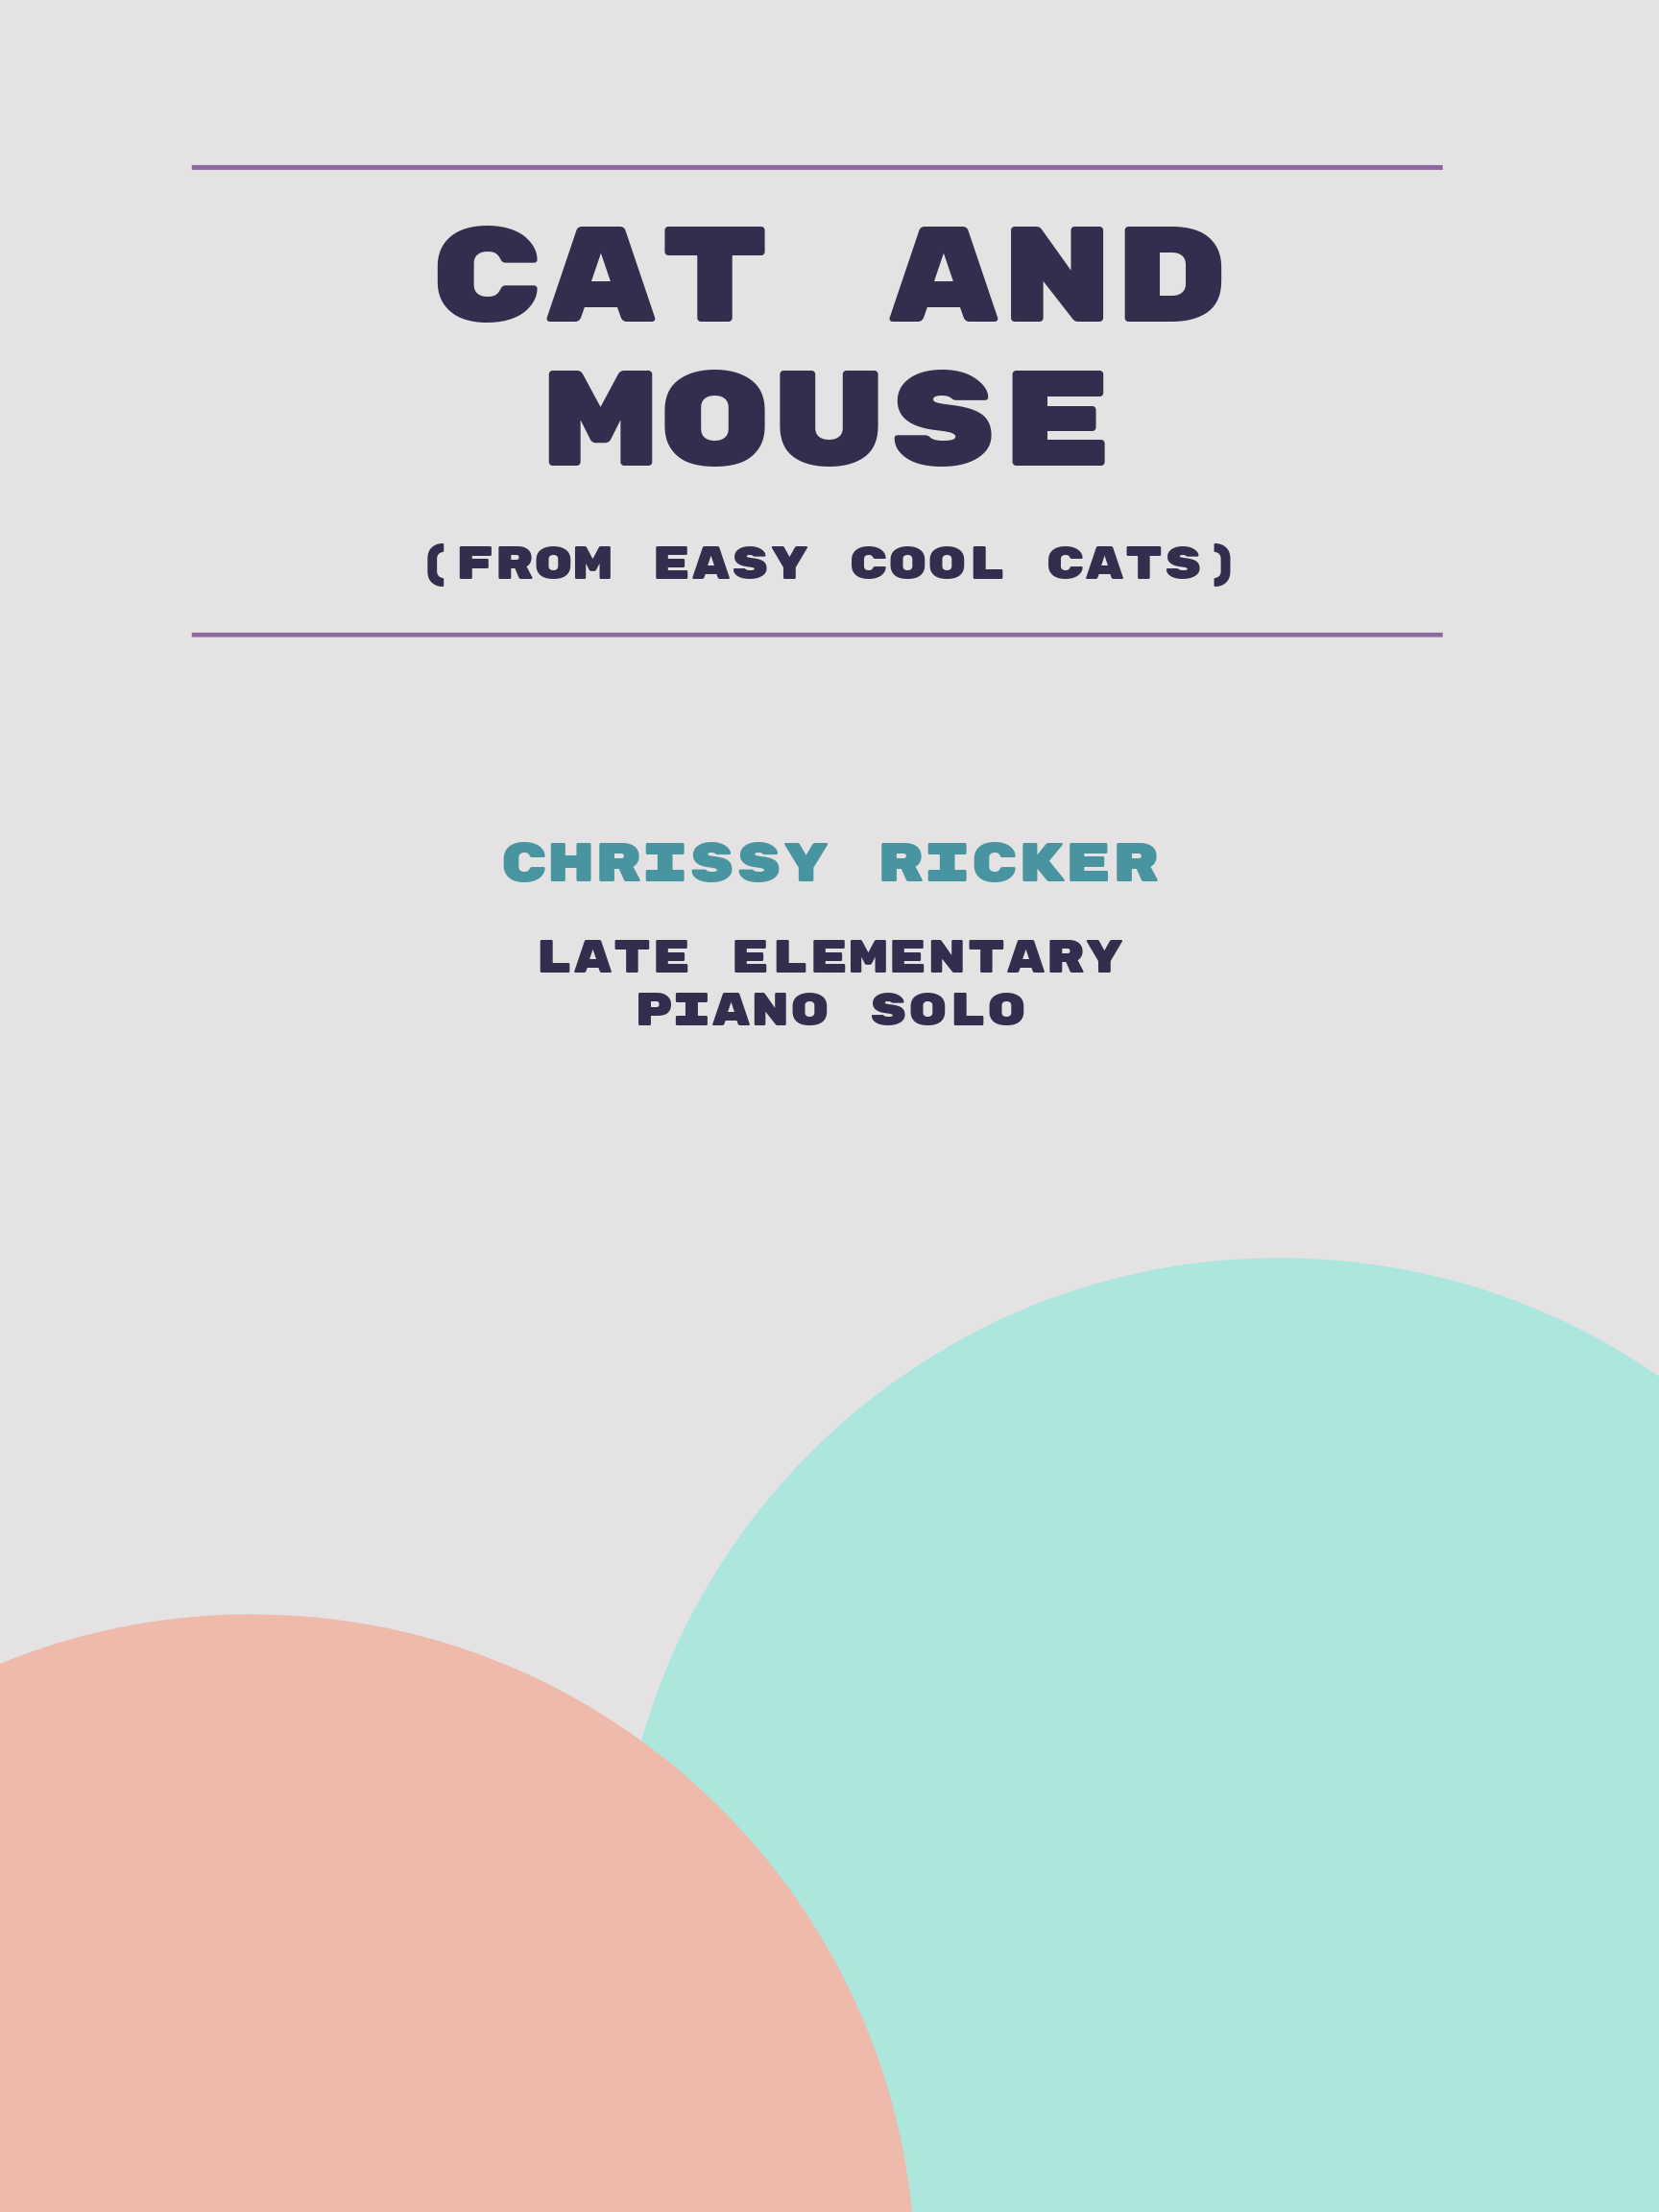 Cat and Mouse by Chrissy Ricker